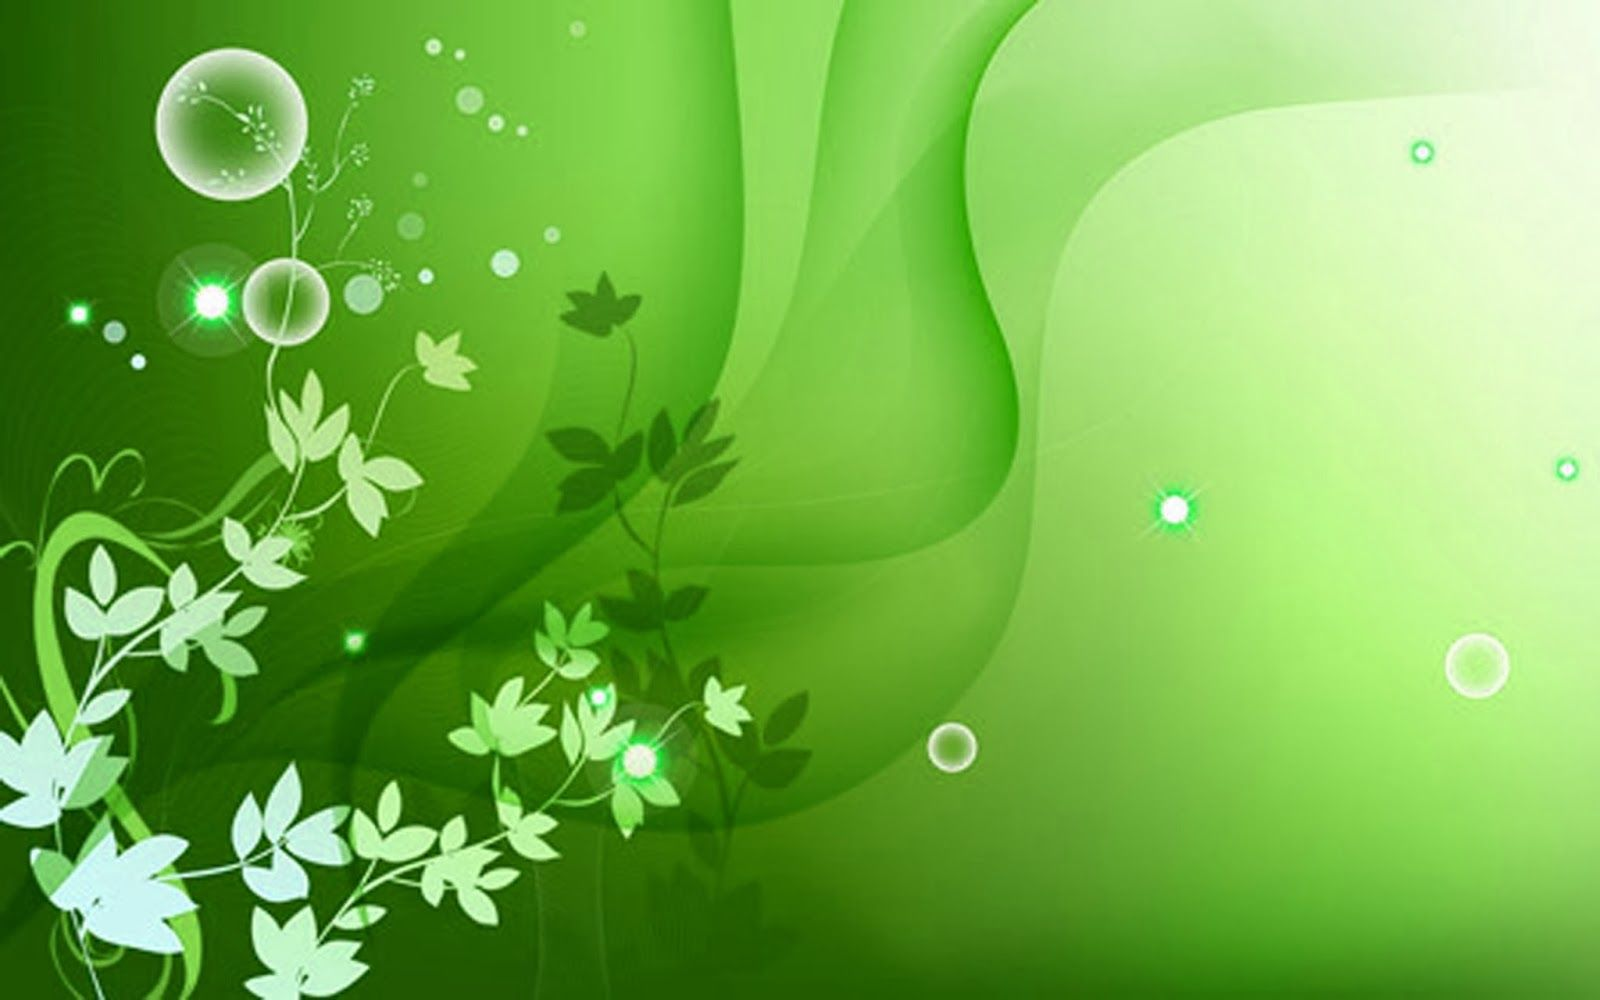 Wallpaper In Green Colour